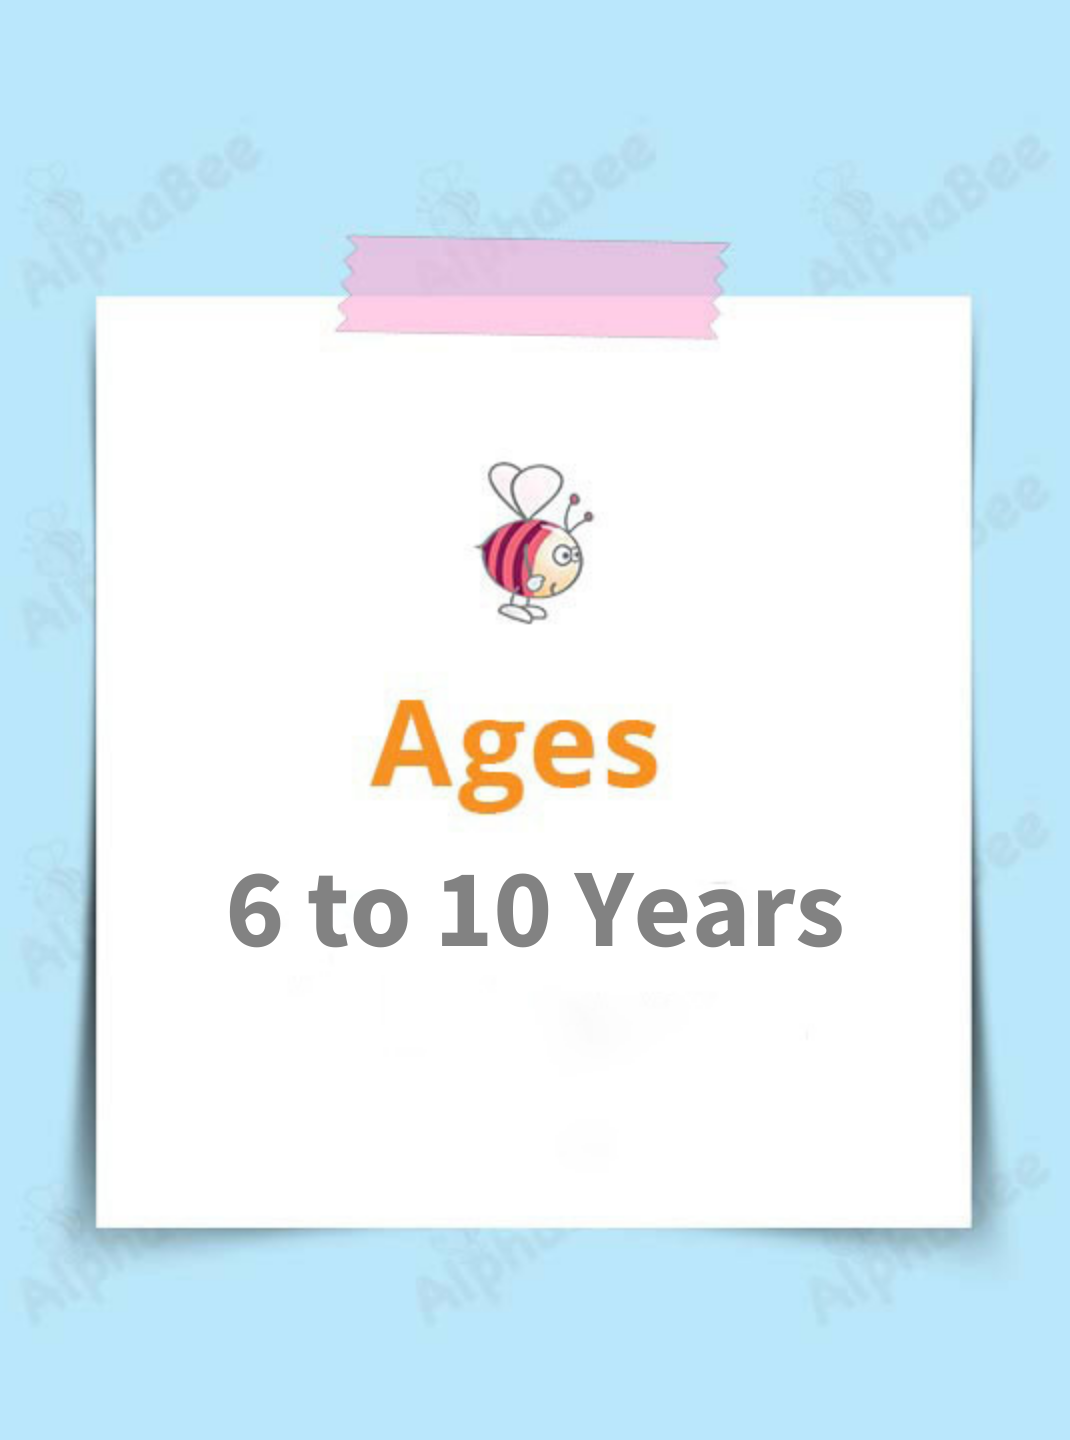 Ages 6-10 Years